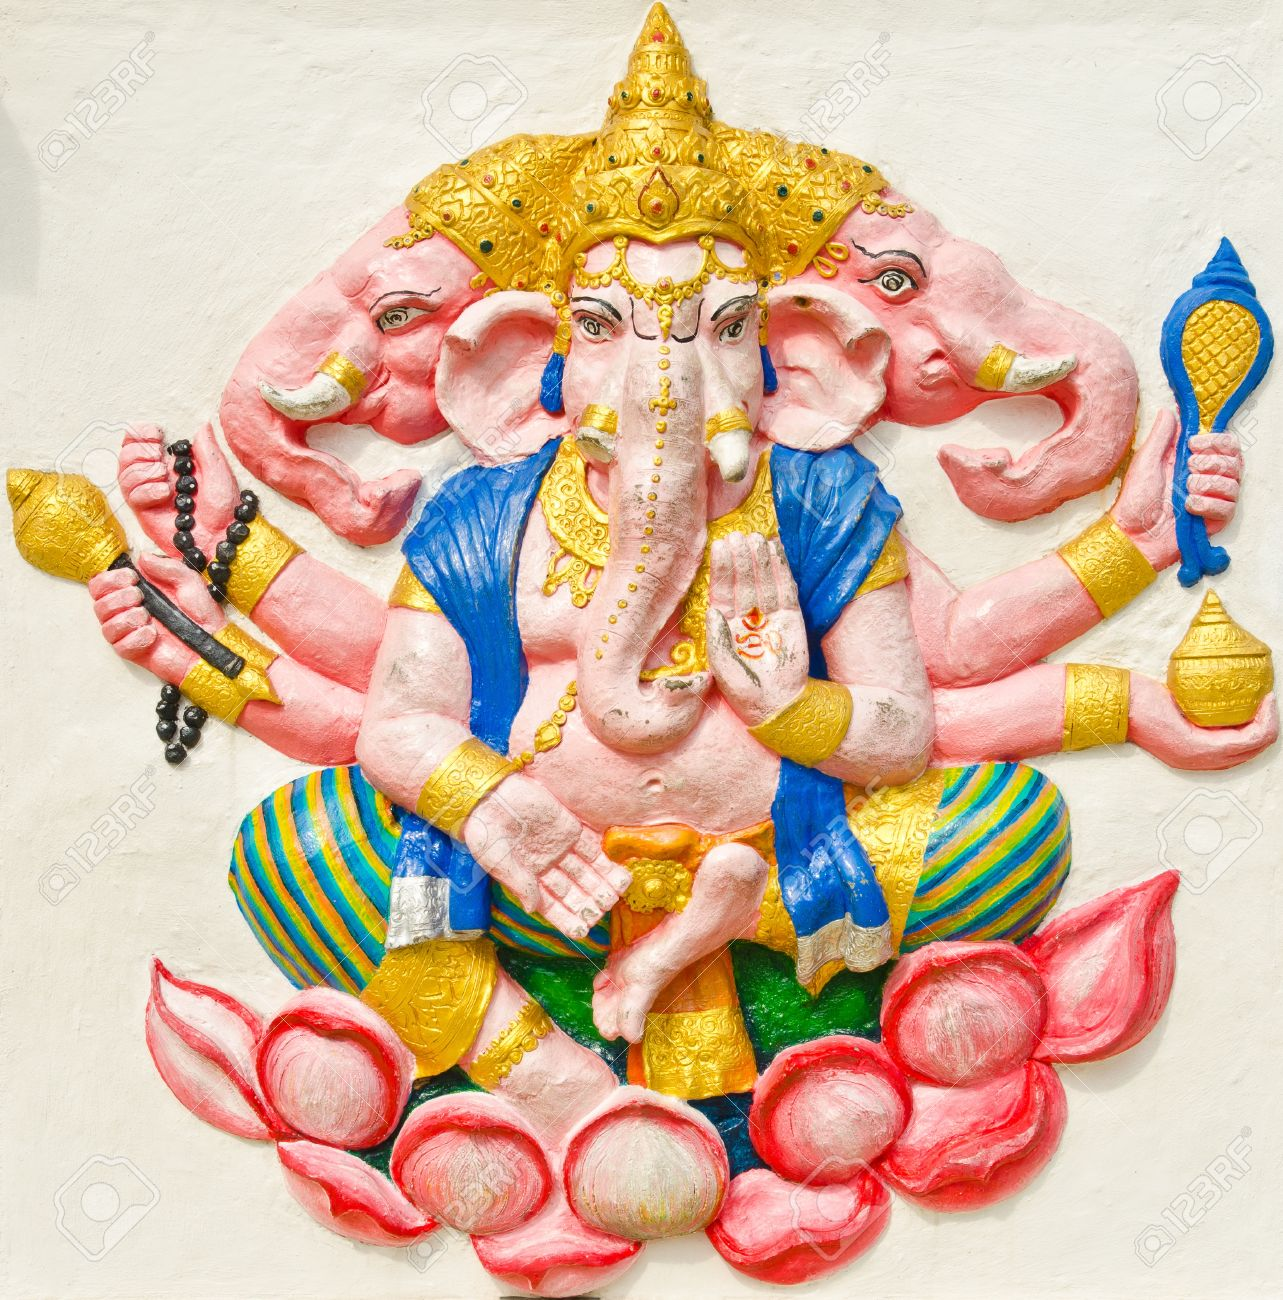 God of success 29 of 32 posture. Indian style or Hindu God Ganesha avatar image in stucco low relief technique with vivid color,Wat Samarn, Chachoengsao,Thailand. Stock Photo - 14834081